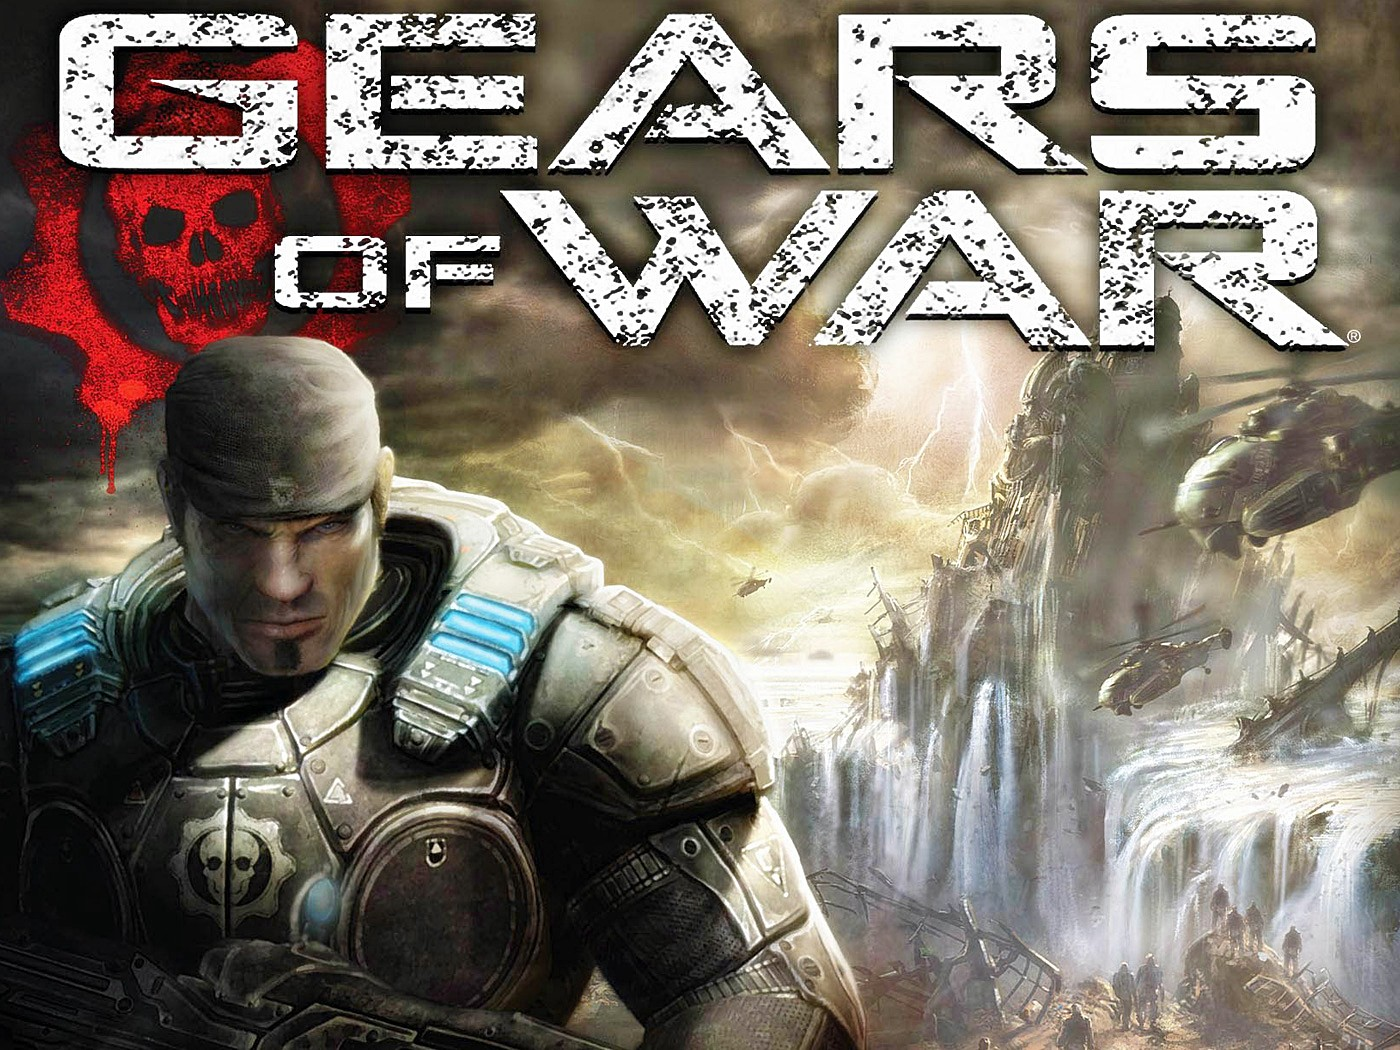 Gears of War DVD Cover 2463.1 Kb